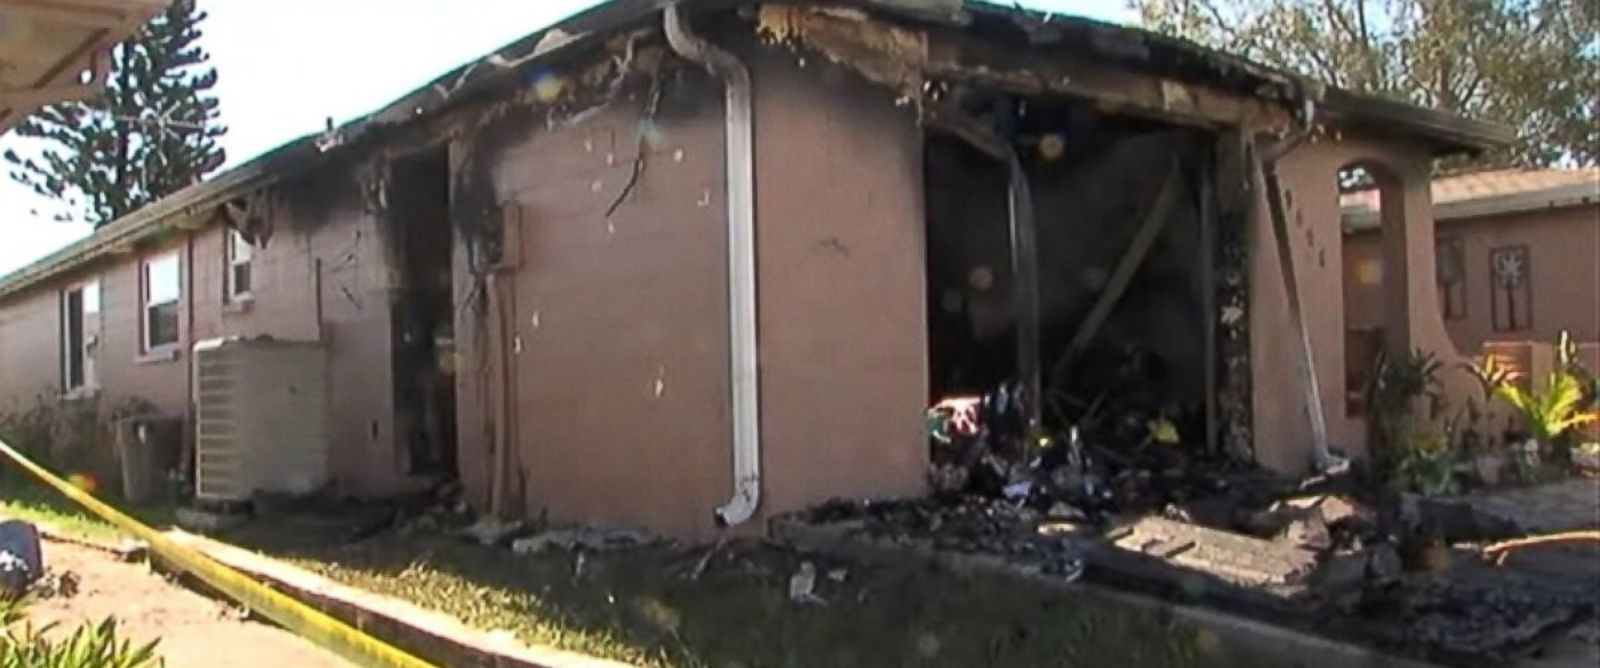 PHOTO: Deputies say a 14-year-old girl set fire to her home using a combination of bleach and rum after an argument with her family.